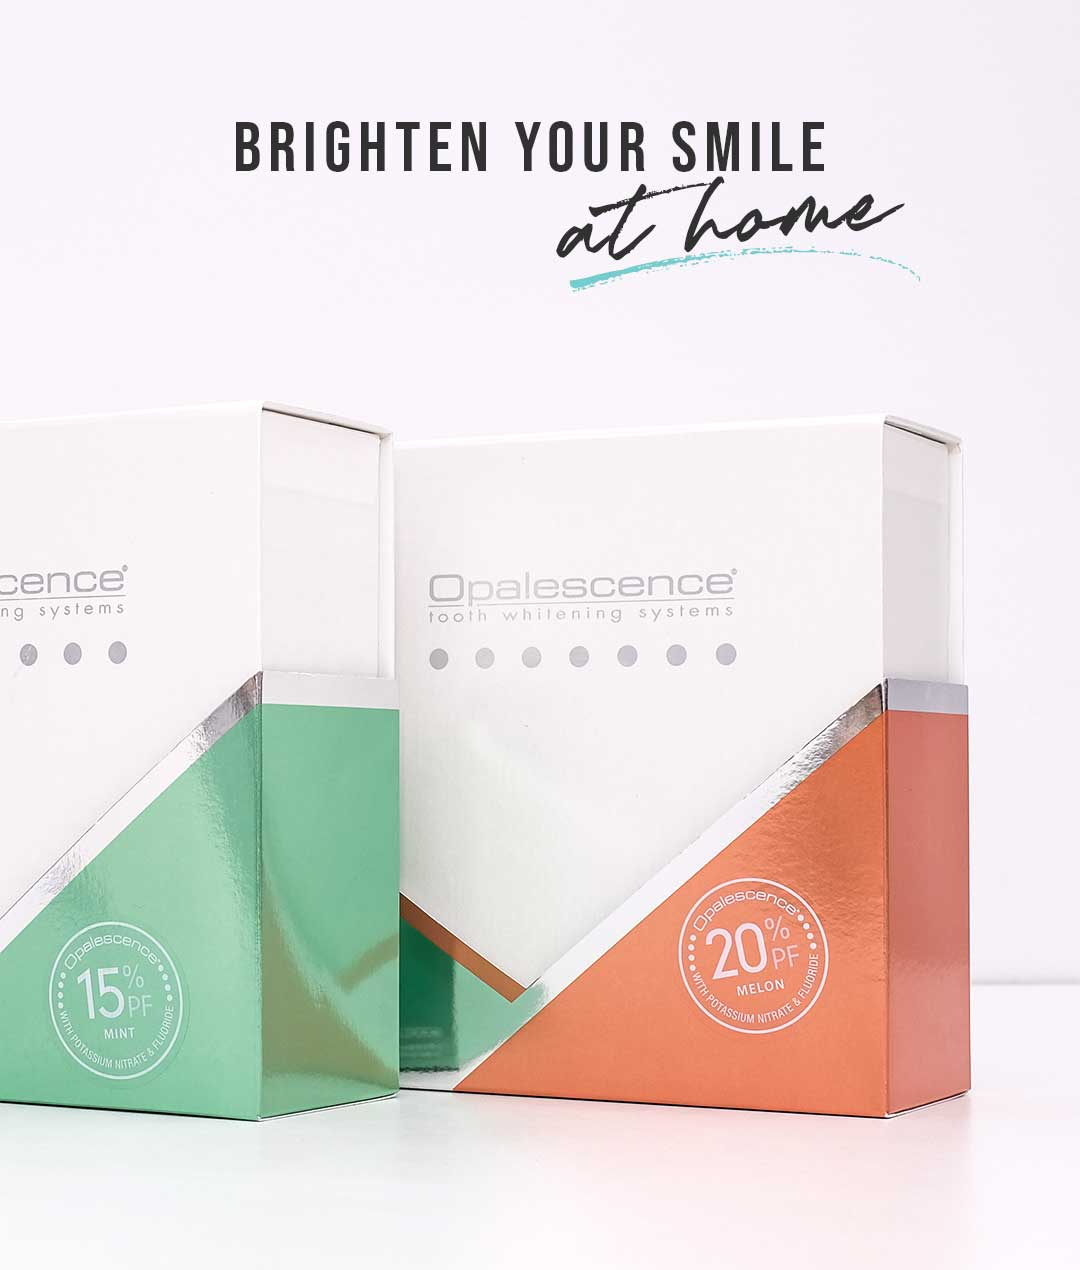 Home Teeth Whitening Kit Dubai